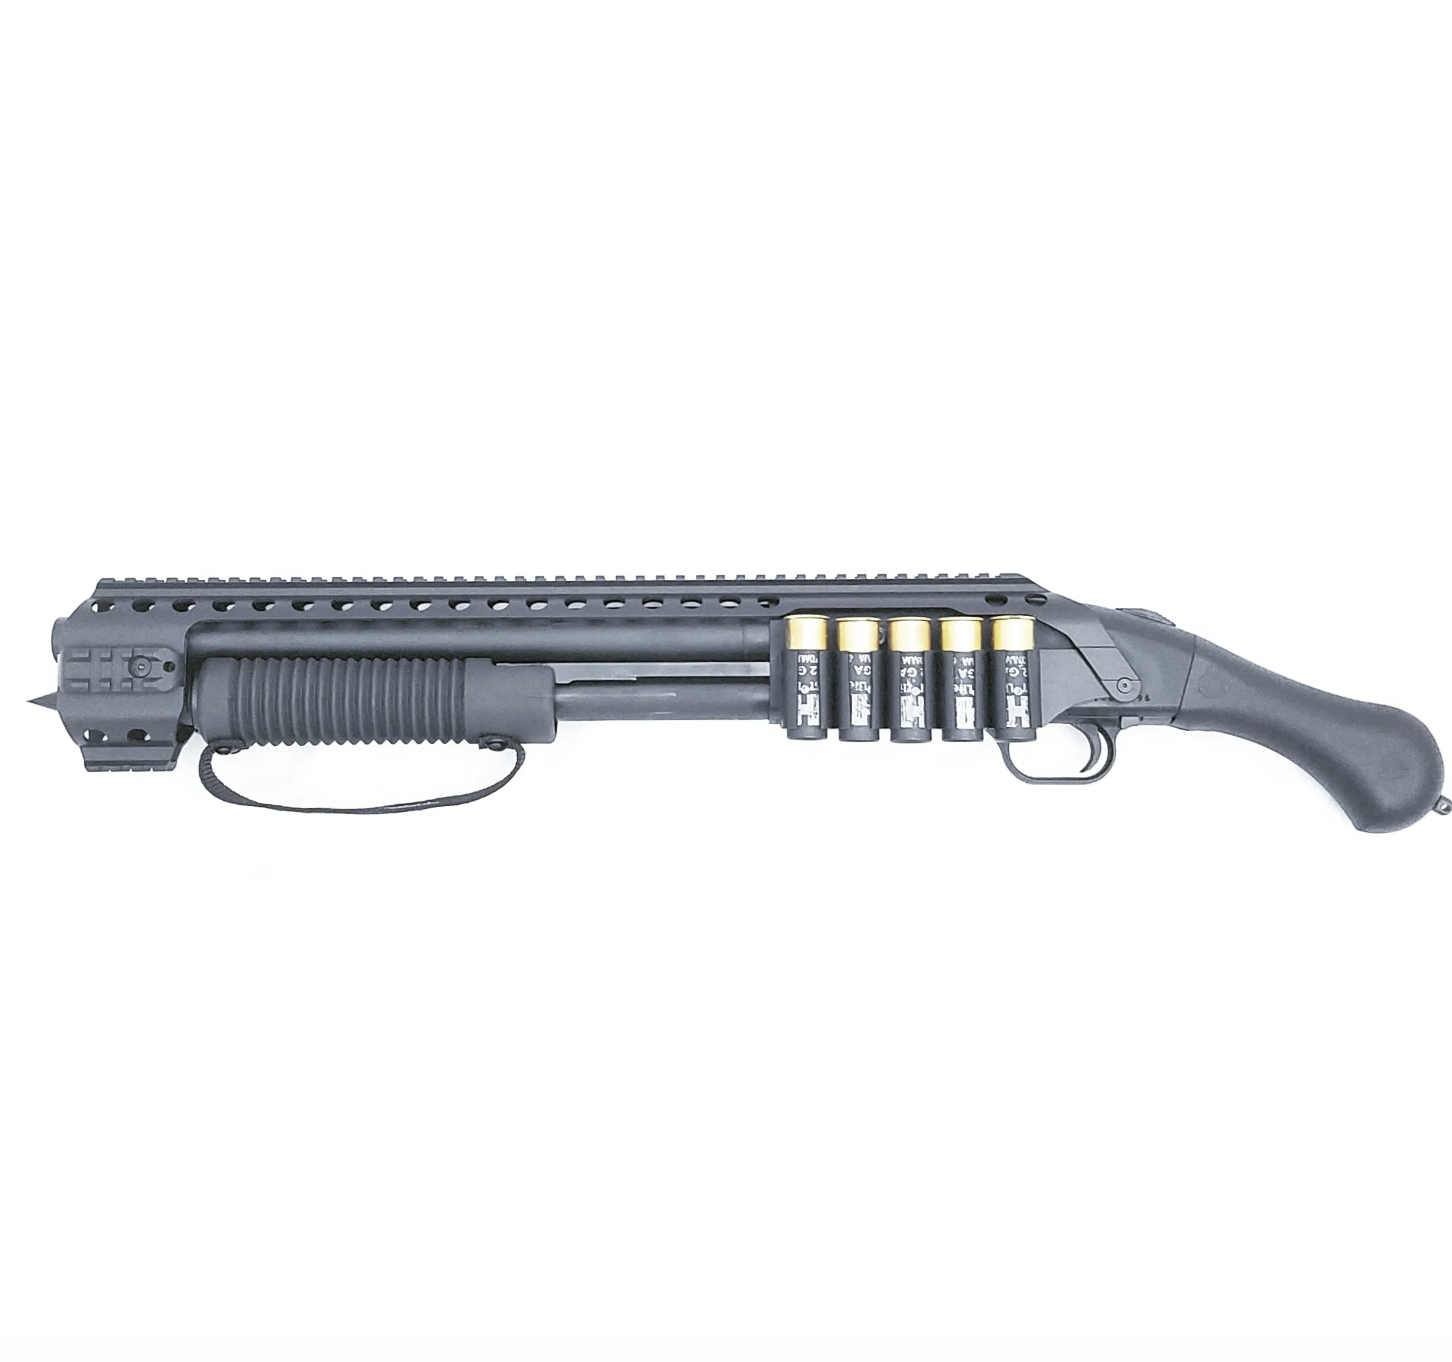 ATI Black Aces Tactical Shockwave Quad Rail With Side